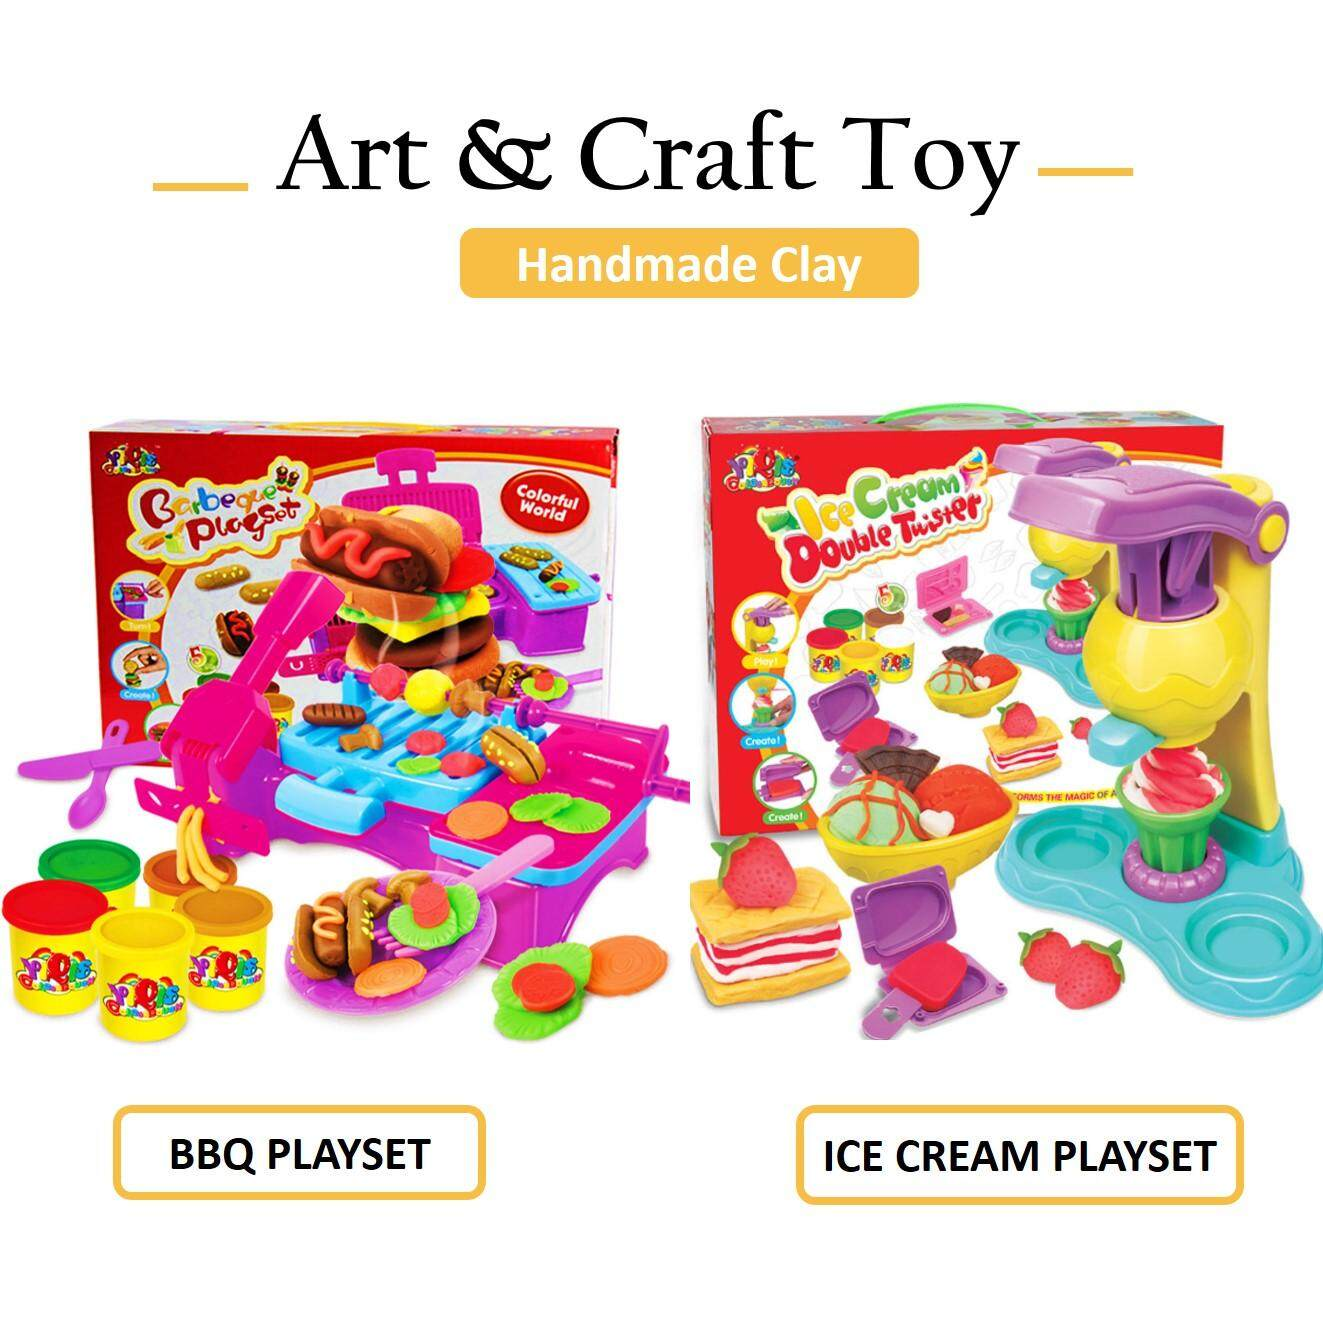 04218a5e1 Clay & Dough - Buy Clay & Dough at Best Price in Malaysia | www ...